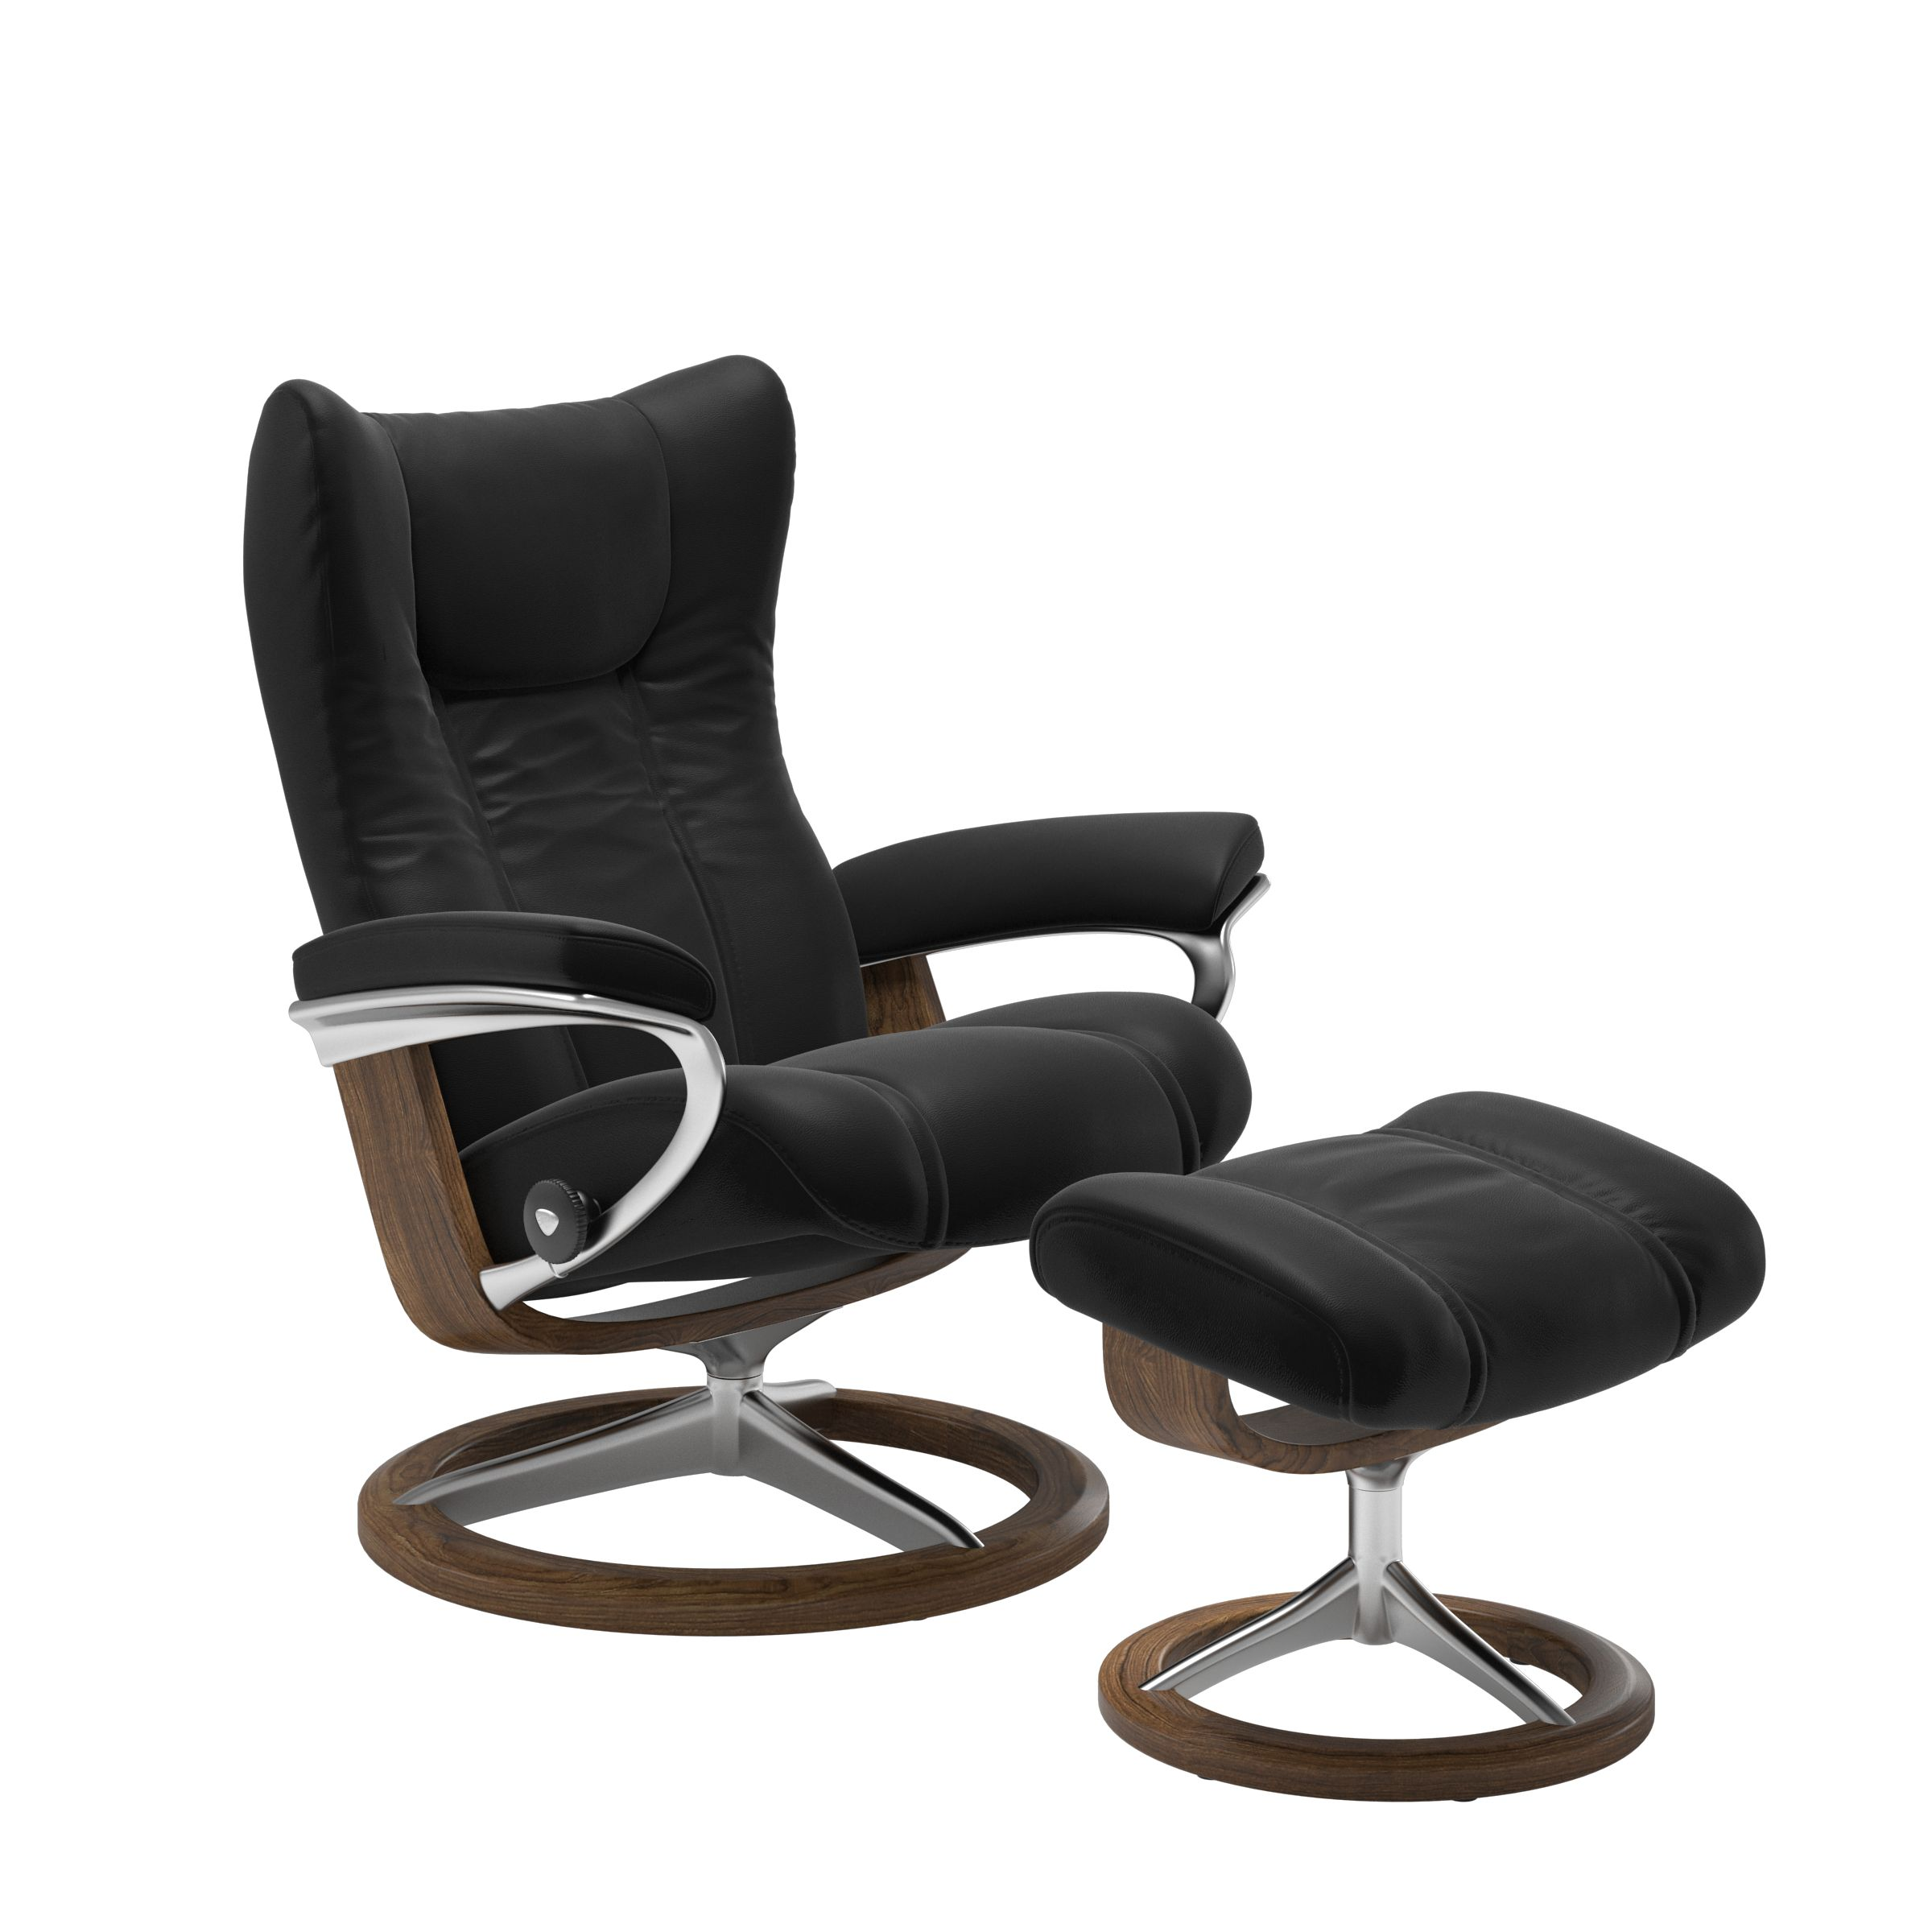 Stressless Ekornes Sessel Stressless Wing Customize Your Own Recliner Stressless